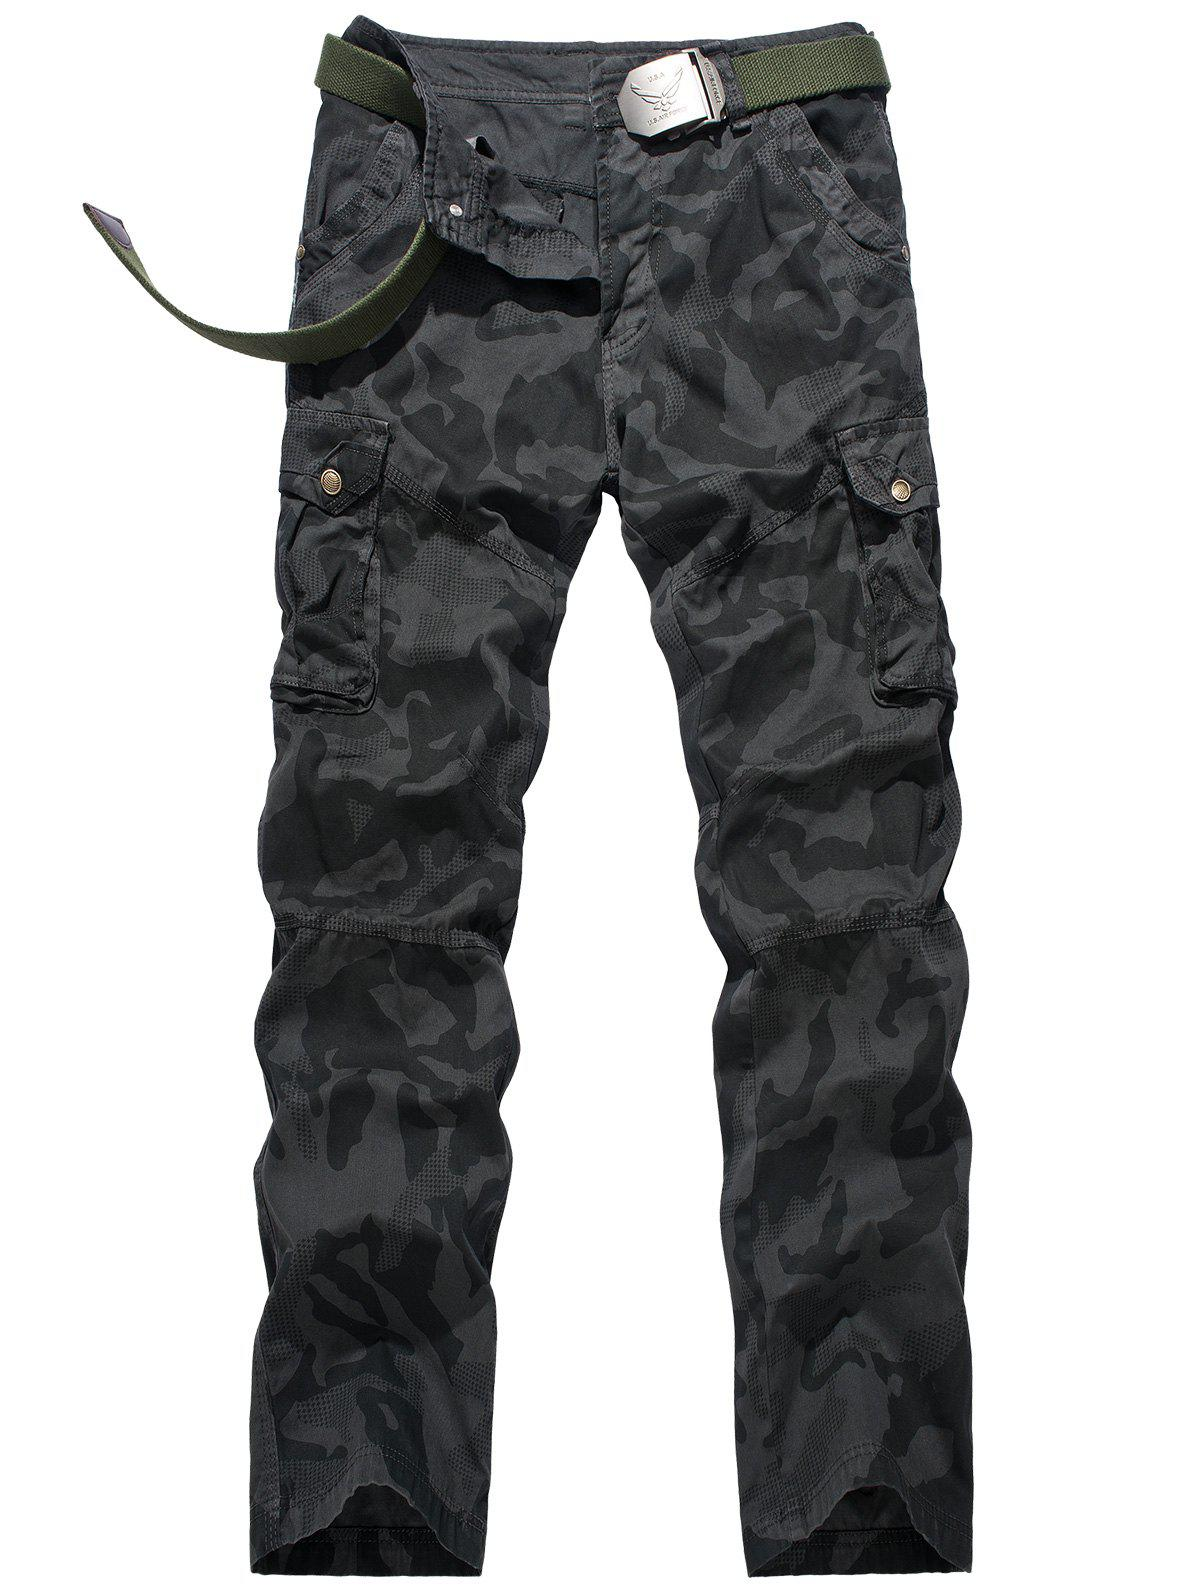 Swallow Gird Camouflage Cargo Pants - DEEP GRAY 34